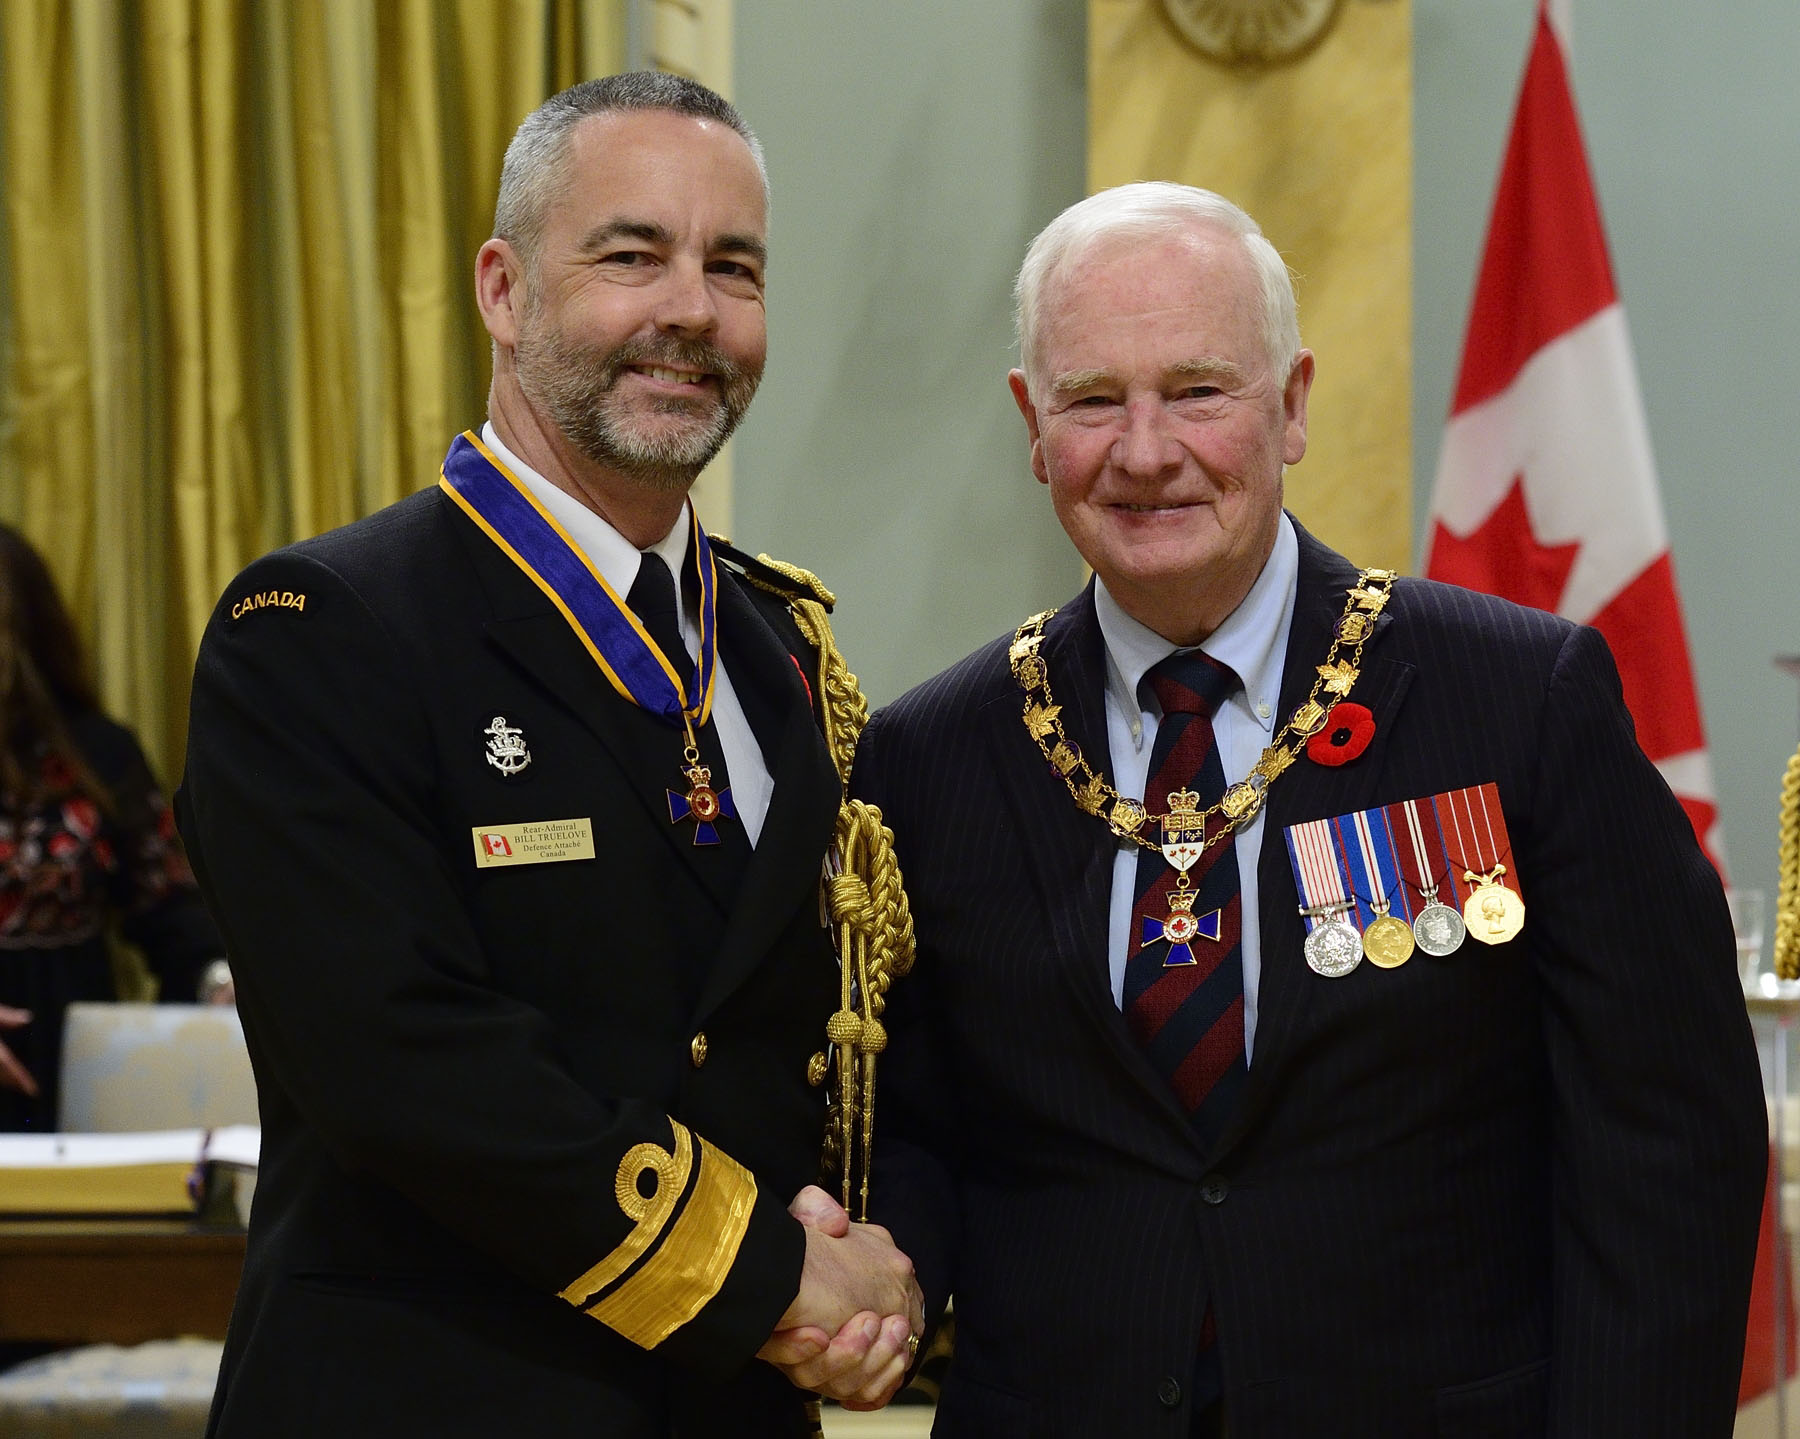 Son Excellence a remis l'Ordre du mérite militaire du grade Commandeur (C.M.M.) au contre-amiral William Shawn Truelove, C.M.M., C.D., État-major de liaison des Forces canadiennes (Washington), Washington (D.C., États-Unis d'Amérique). Il s'agit d'une promotion au sein de l'Ordre.